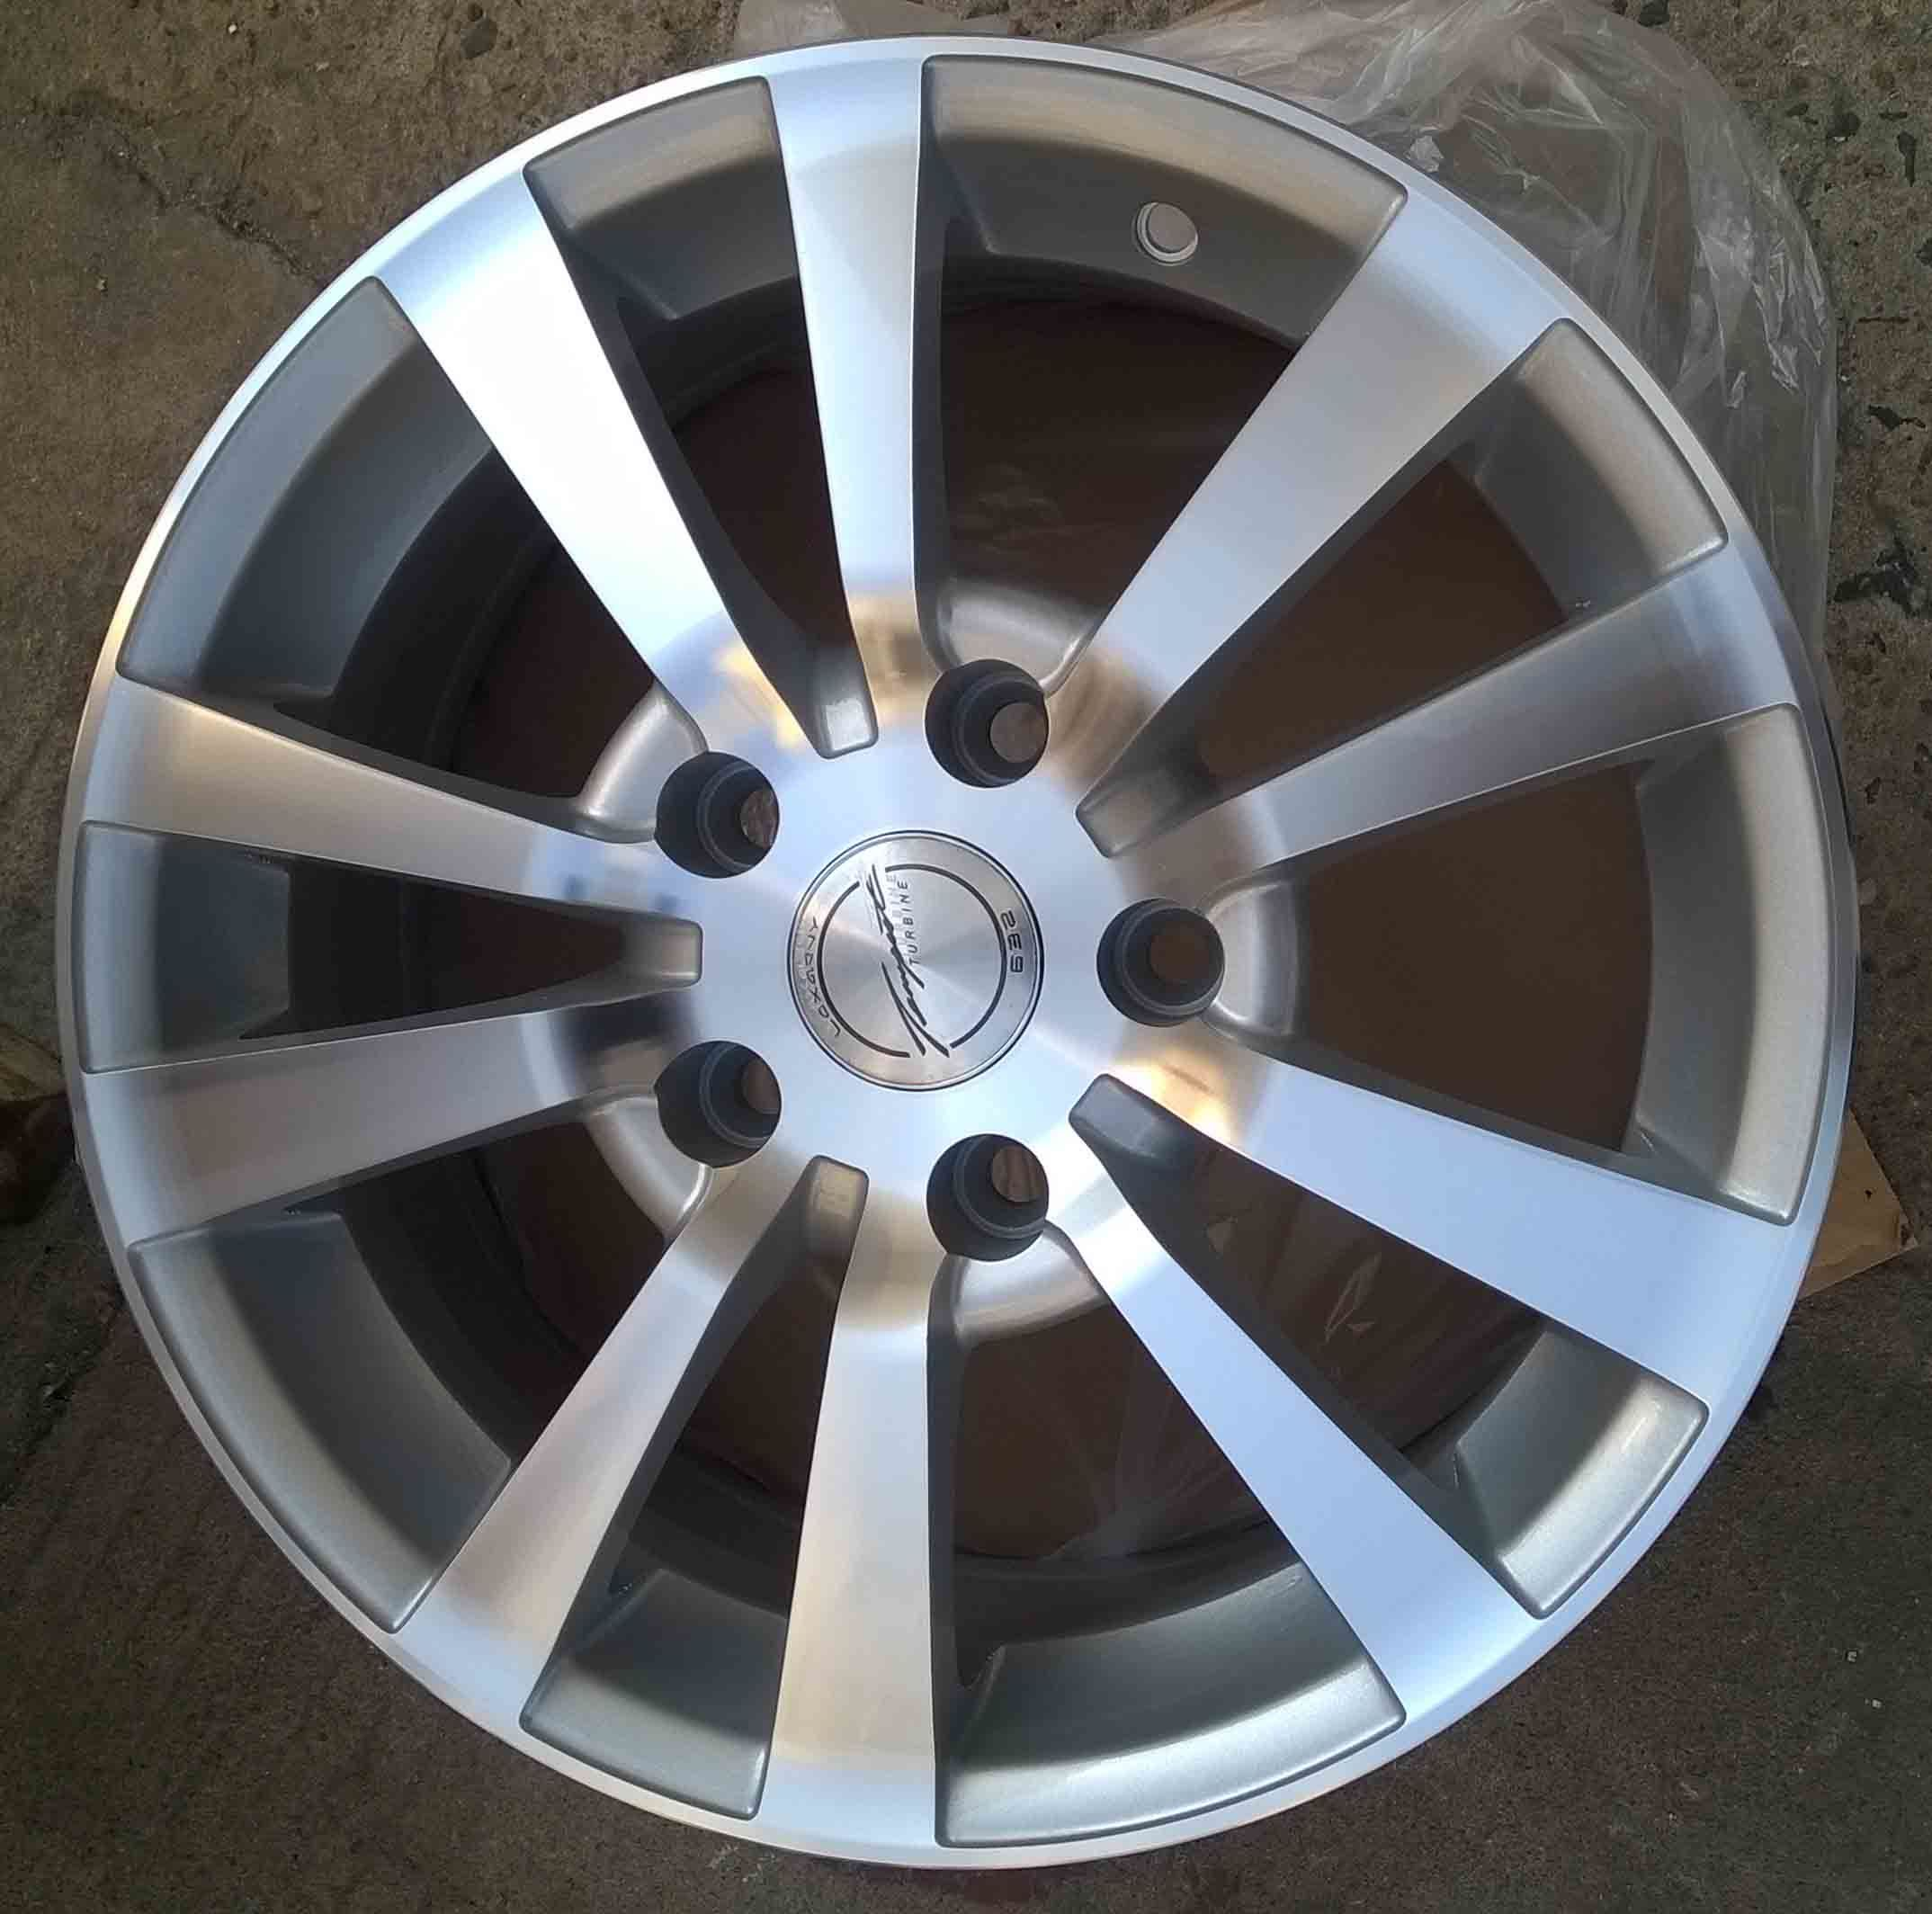 Aftermarket Alloy Wheel (KC335)